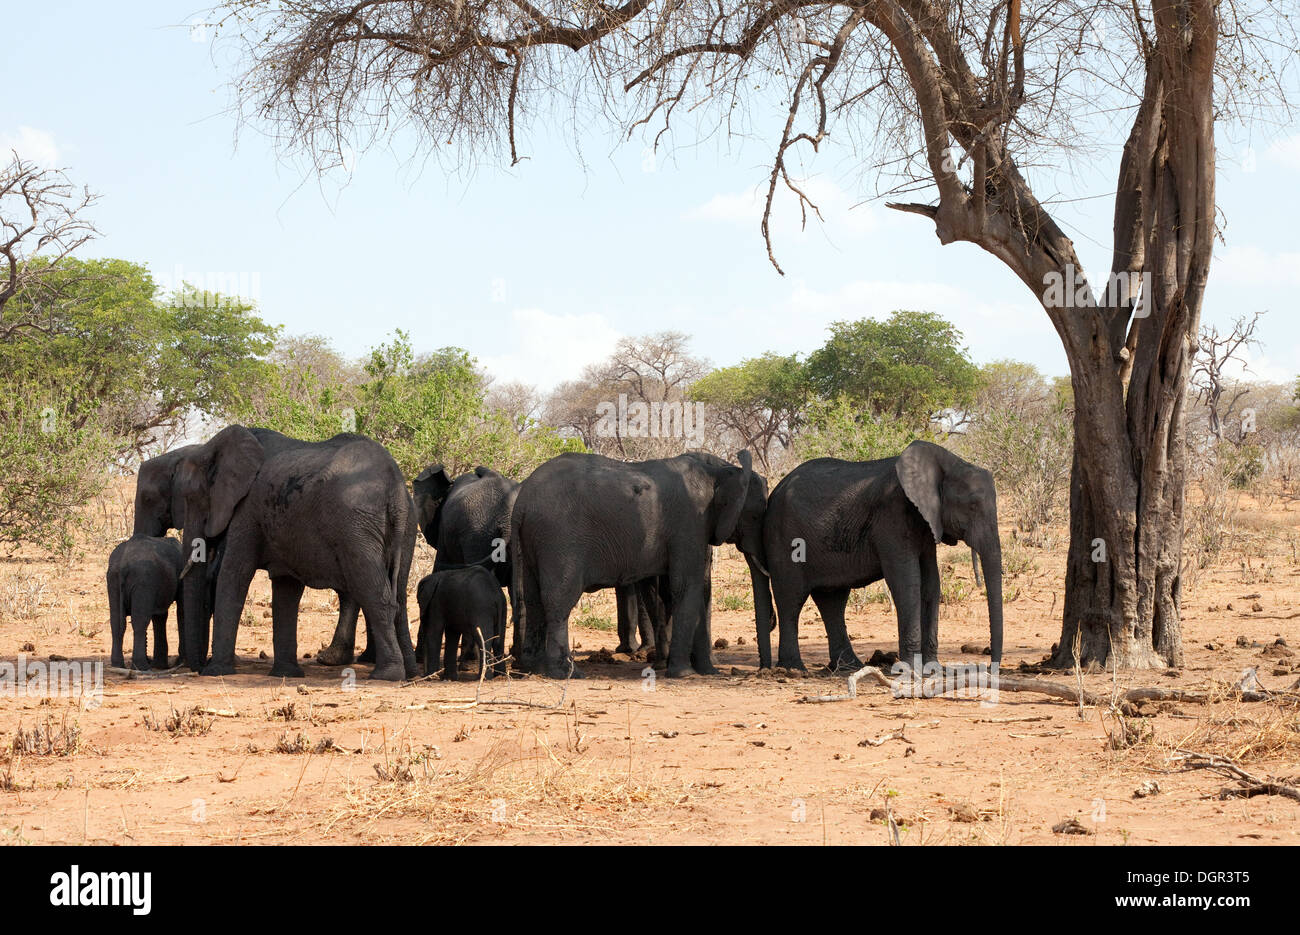 A herd of elephants sheltering from the midday heat in the shade of a tree, Chobe National Park, Botswana africa - Stock Image